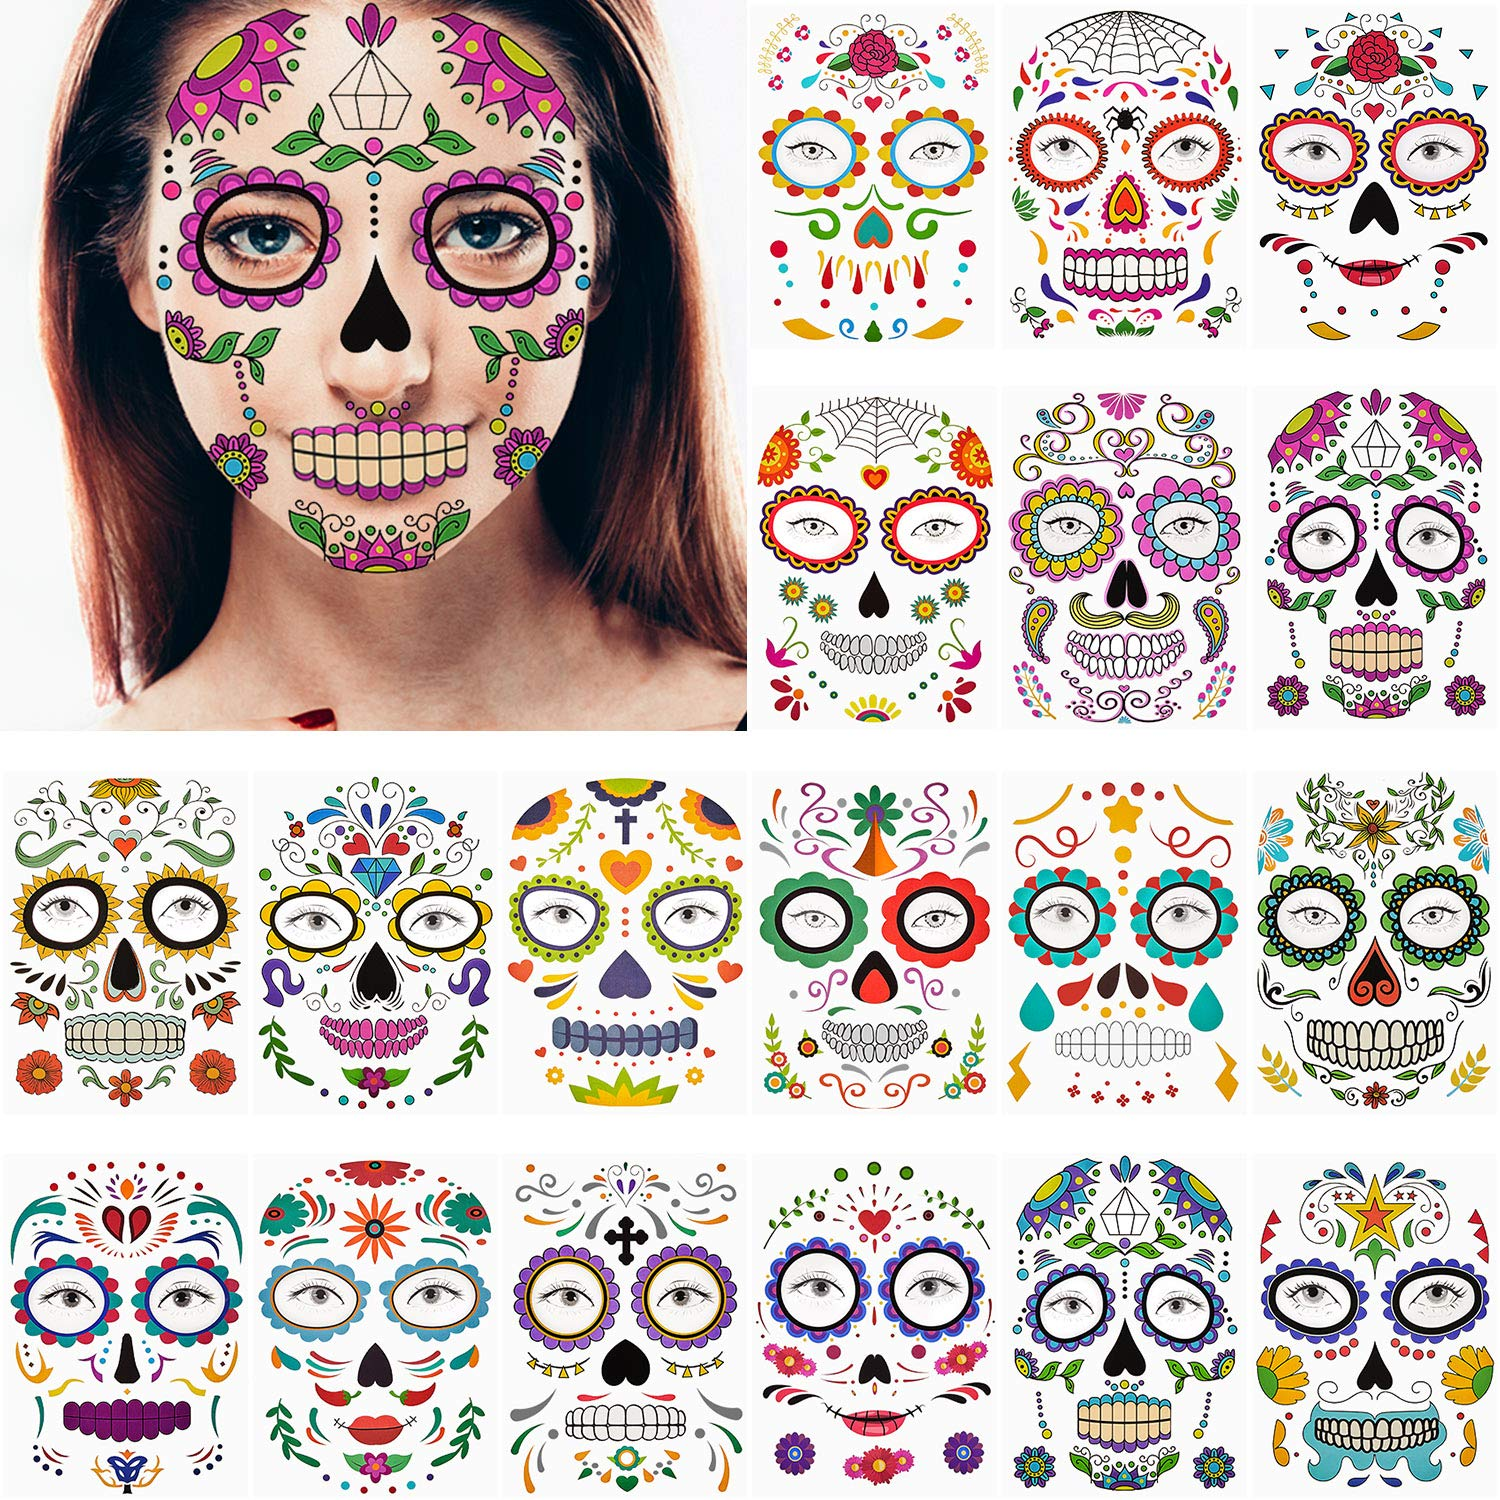 18 Sheets Halloween Face Temporary Tattoos Waterproof Makeup Stickers Sugar Skull Floral Black Skeleton Web Red Roses Face Tattoos for Women Men Kids Halloween Party Favor Supplies